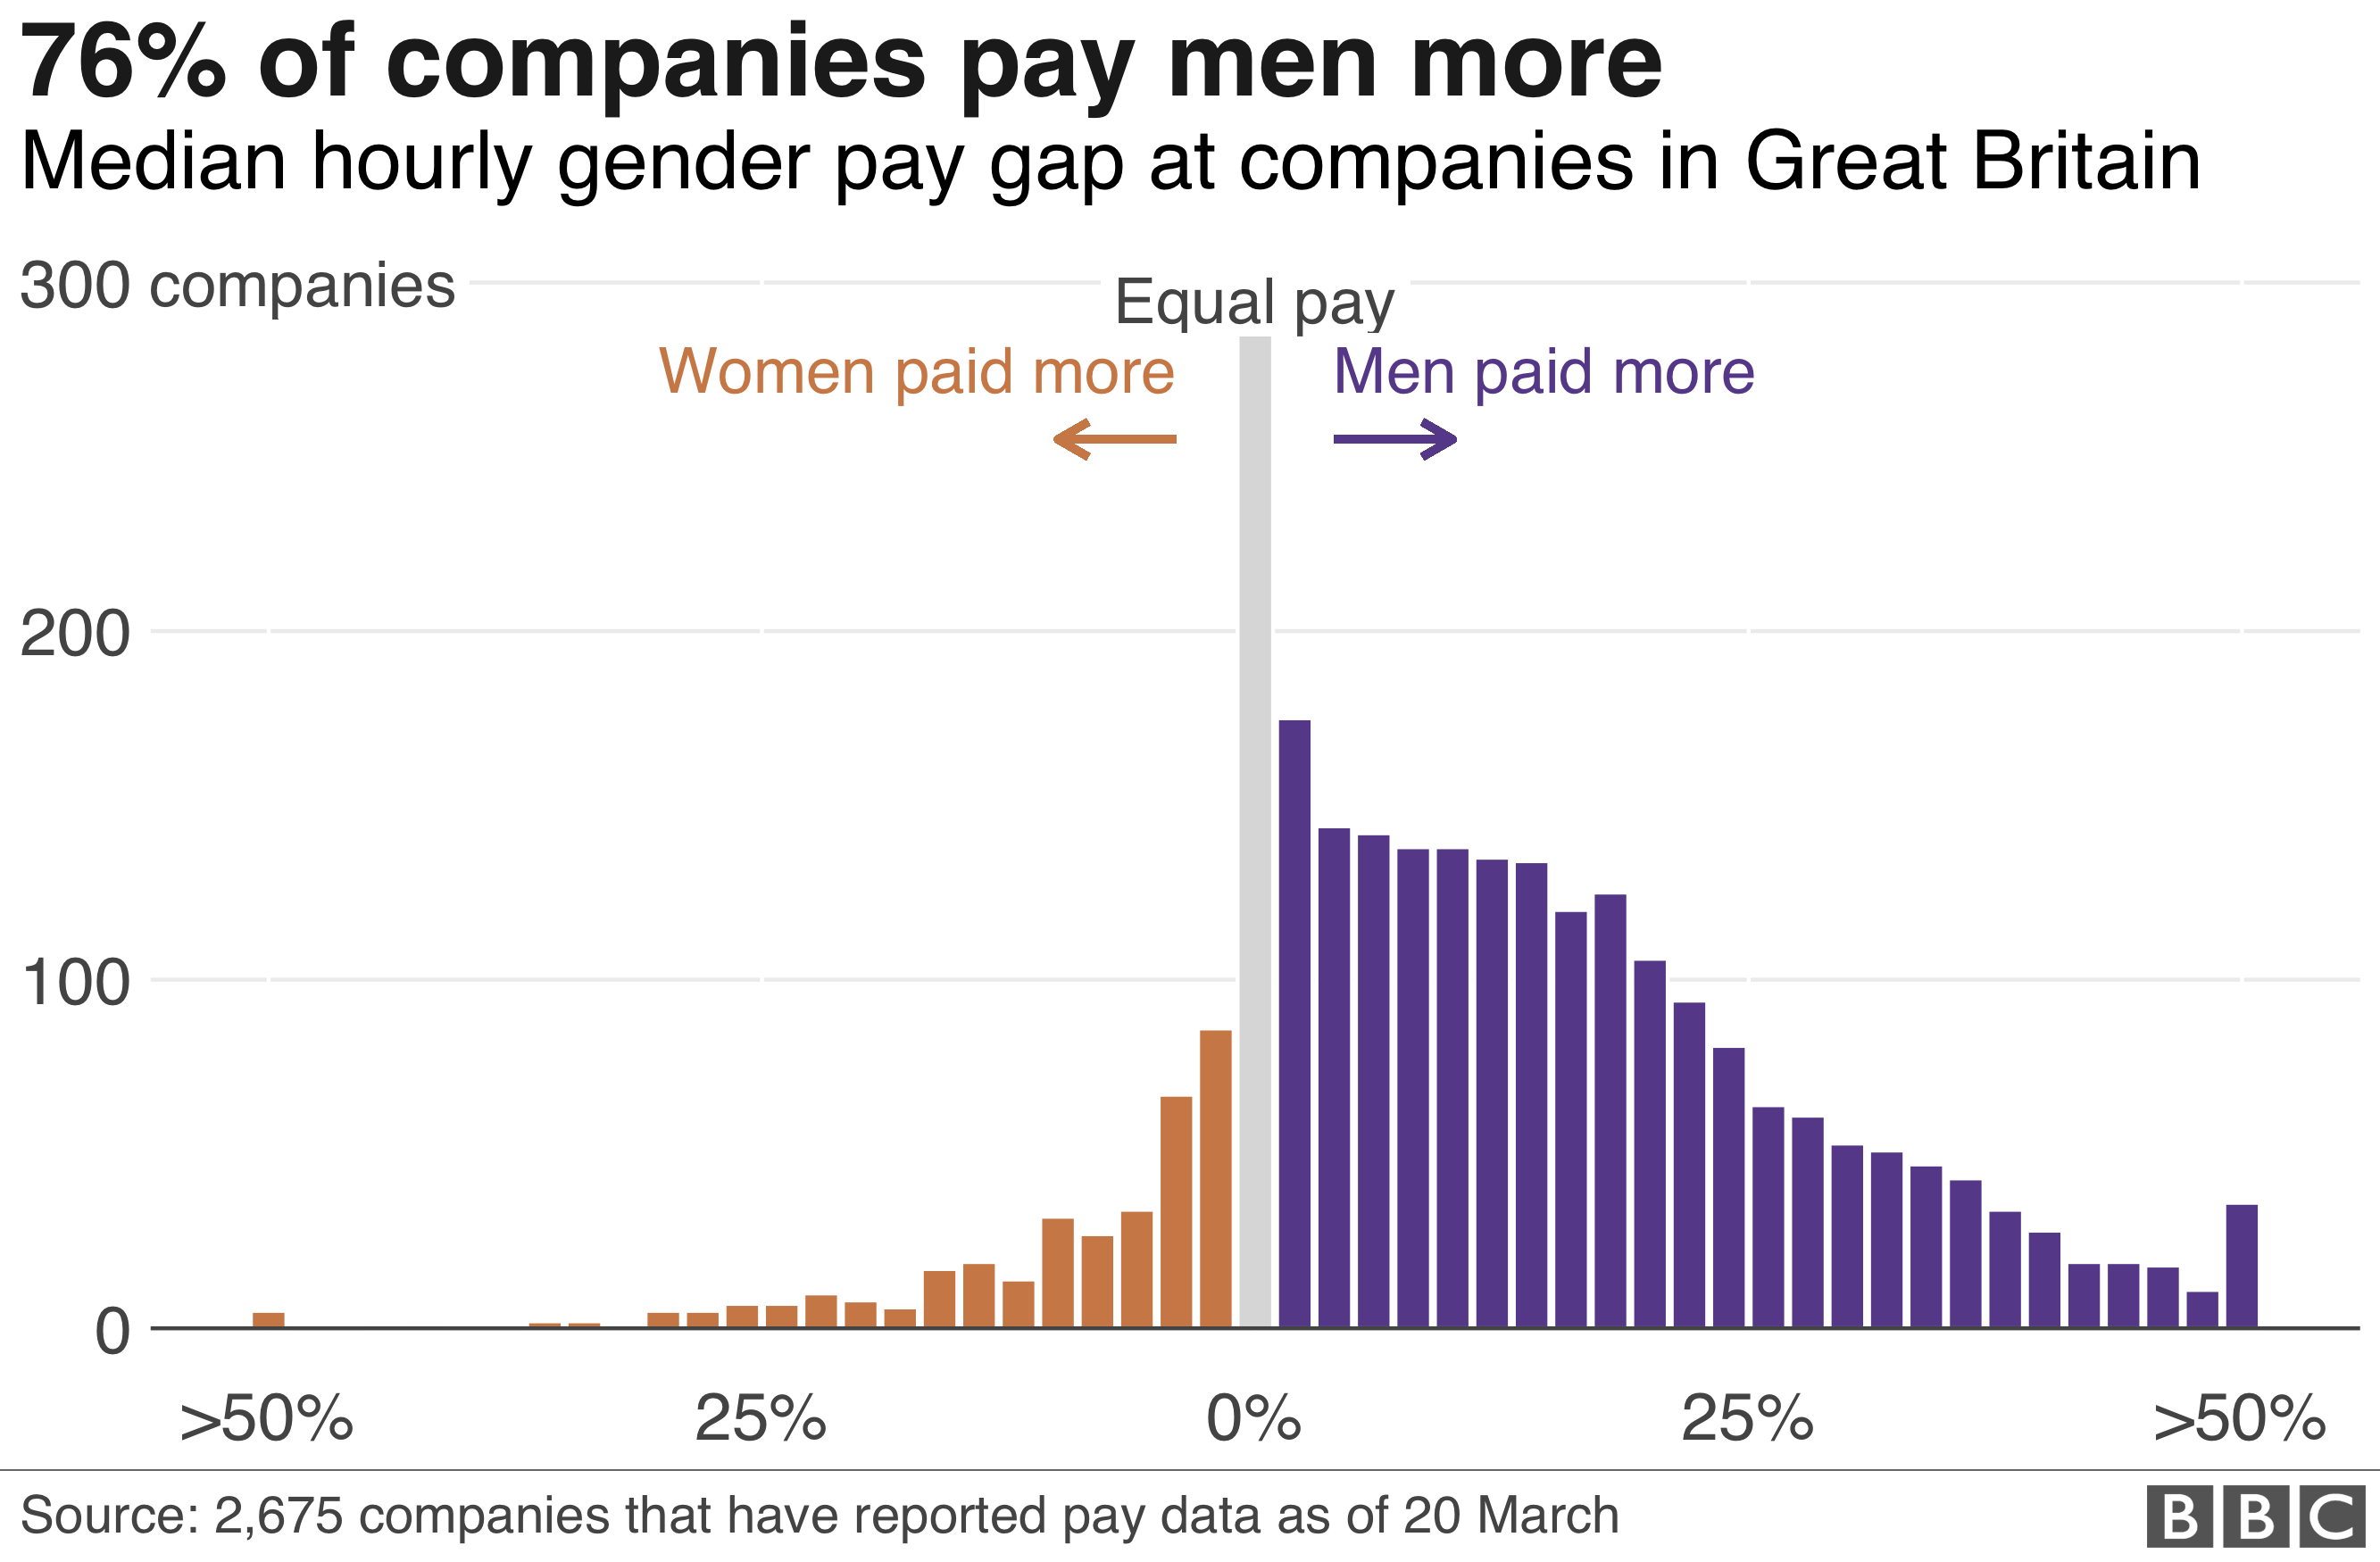 Median hourly pay gap at companies in Great Britain